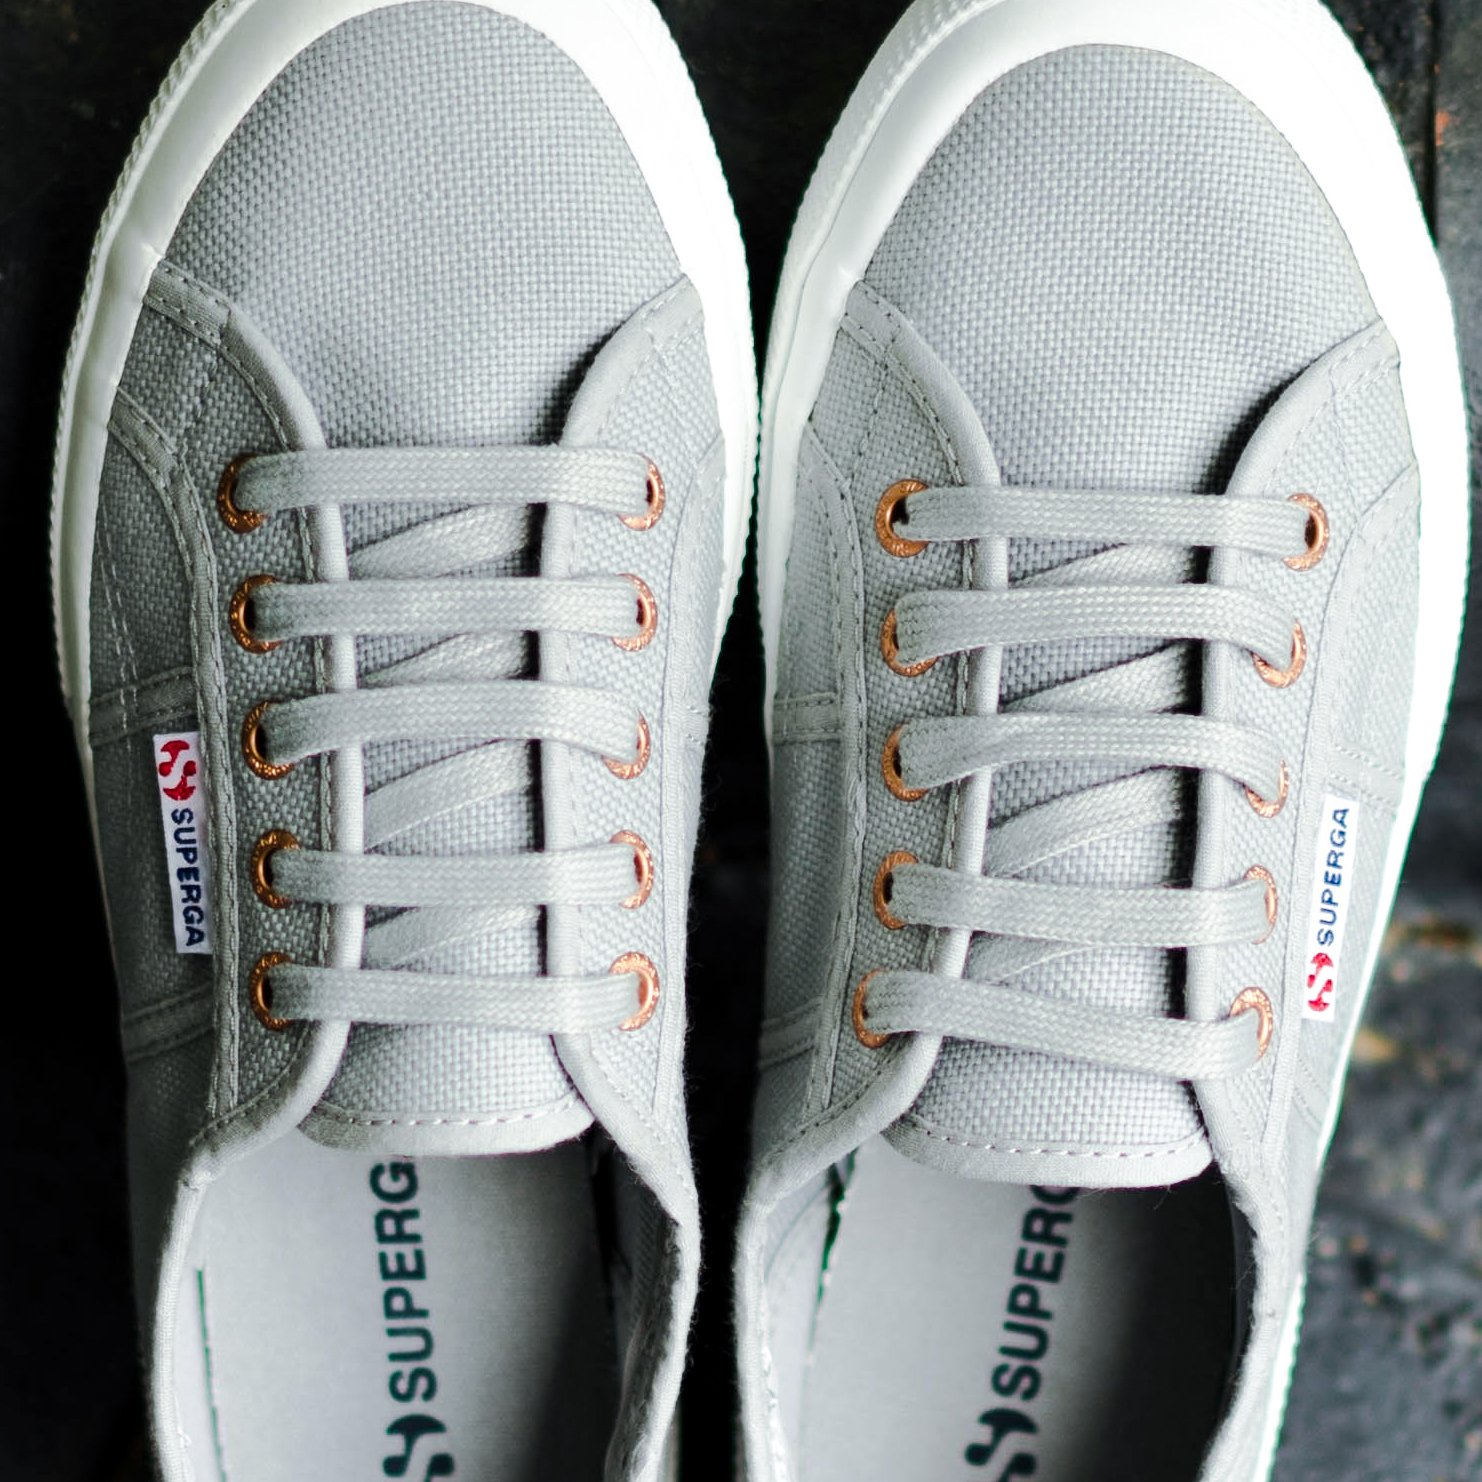 9237a43be2f7 SUPERGA on Twitter